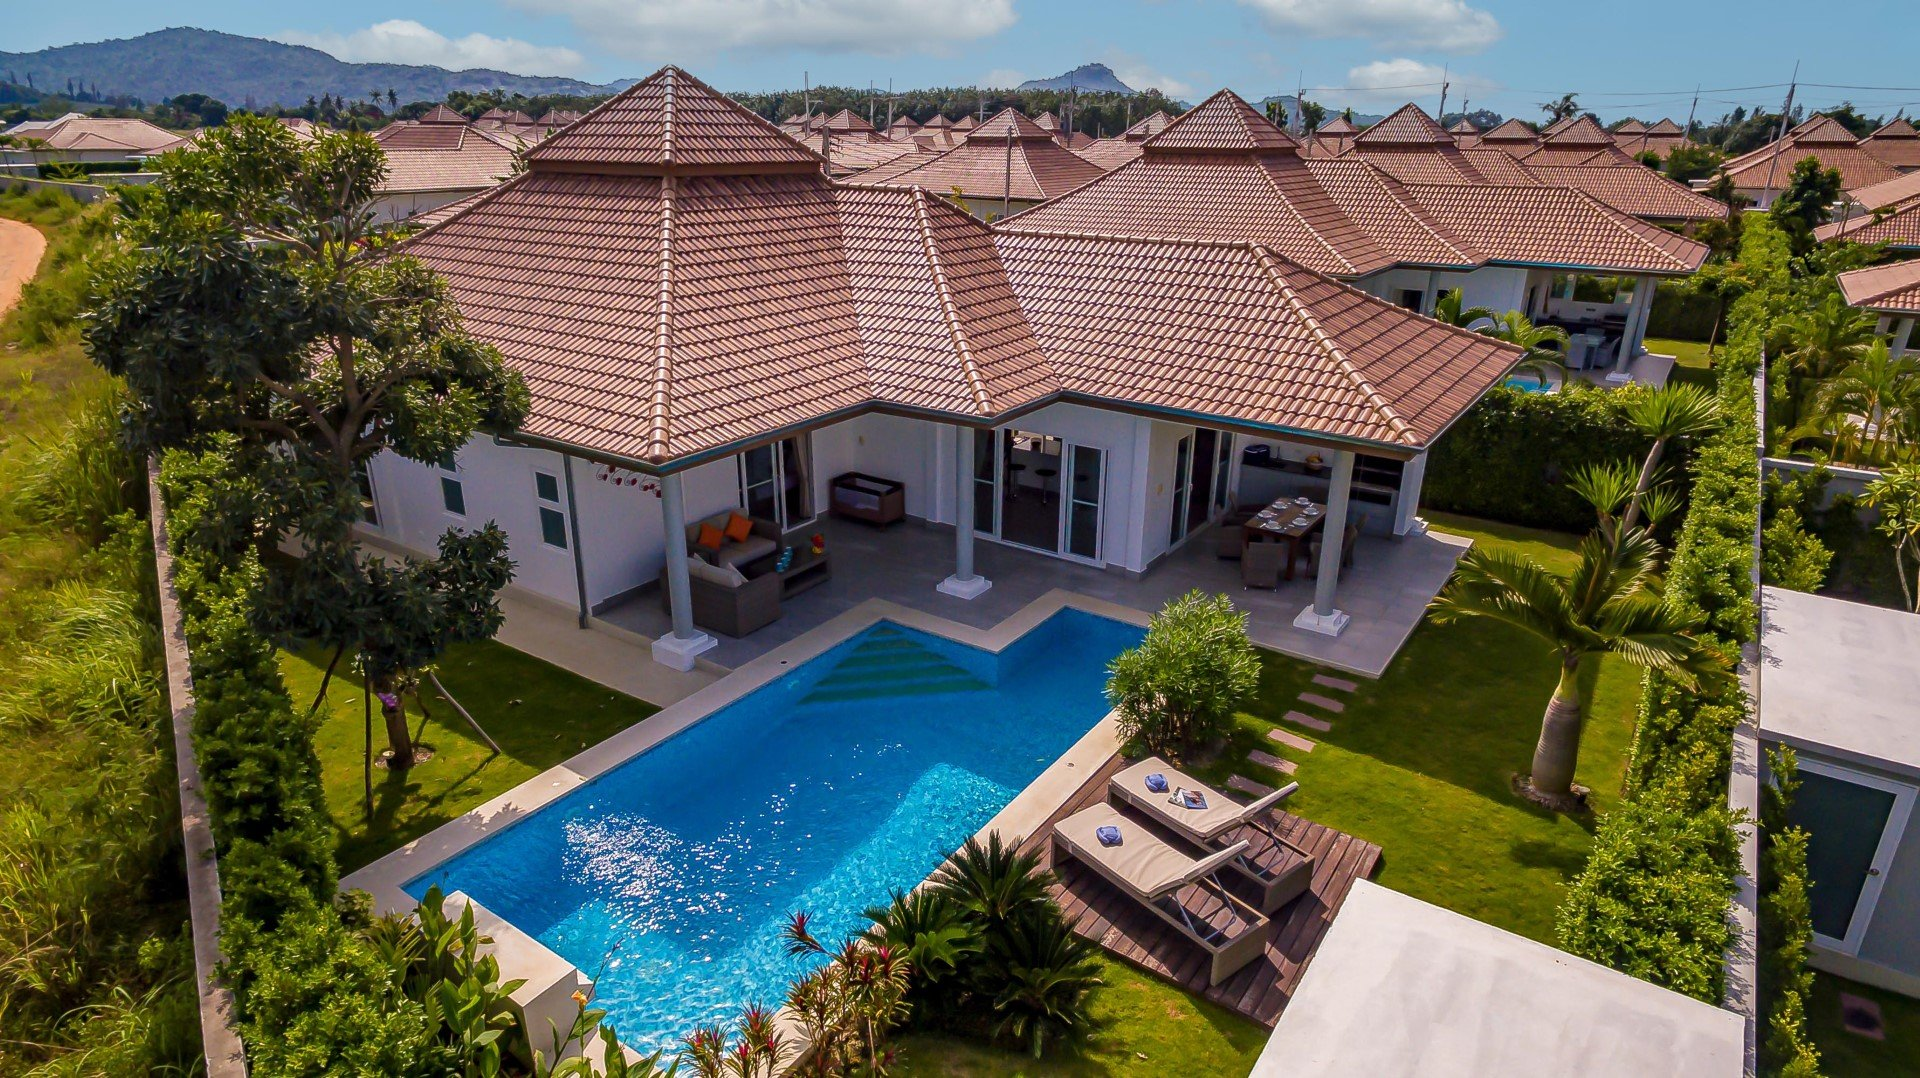 3 Bedroom Villa for Rent | Rental Property in Hua Hin | Orchid Palm Homes